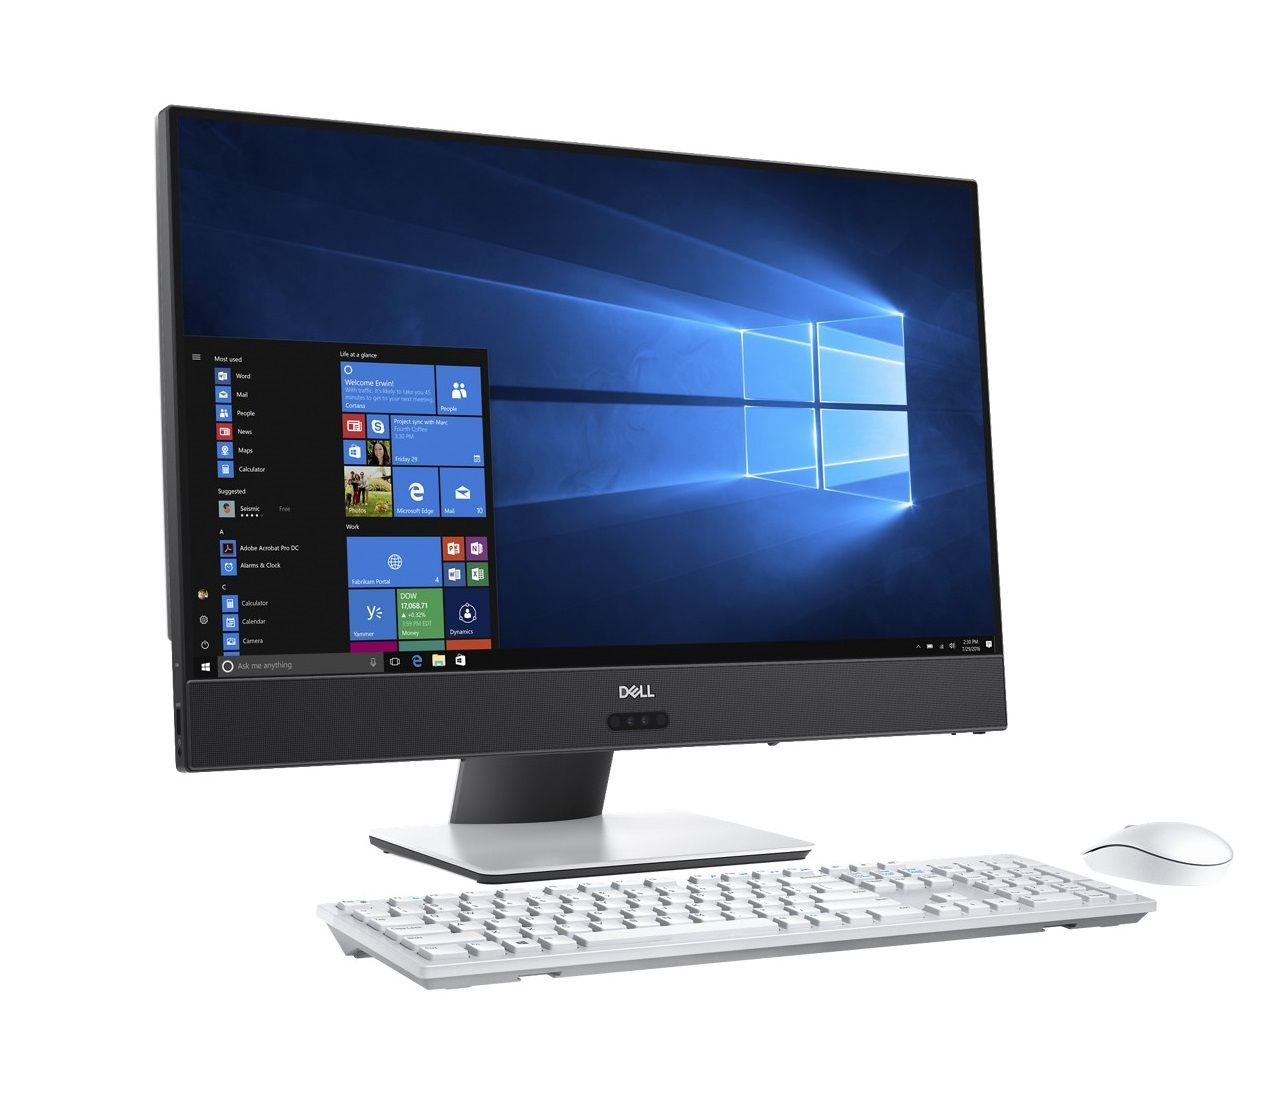 Dell Inspiron 5475 AIO/A10-9700E(quad core)/8GB/1TB/ATI RX560 4GB/FHD Touch/Win Home